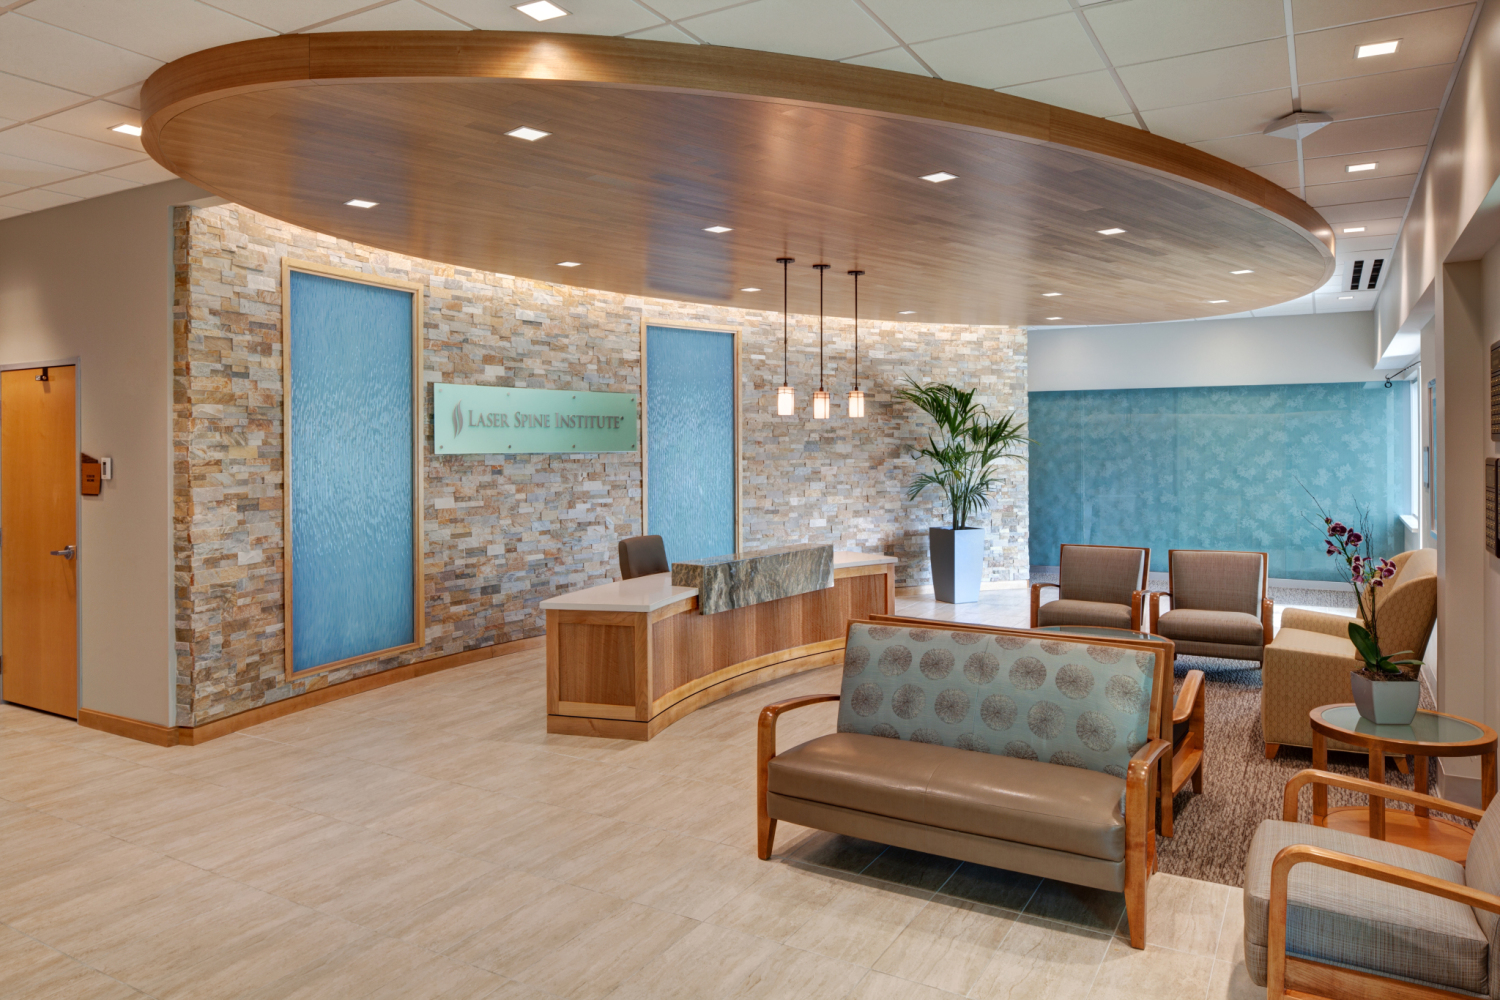 Construction Project Manager Salary >> Laser Spine Institute – Outpatient Surgery Center | Architect Magazine | Array Architects ...